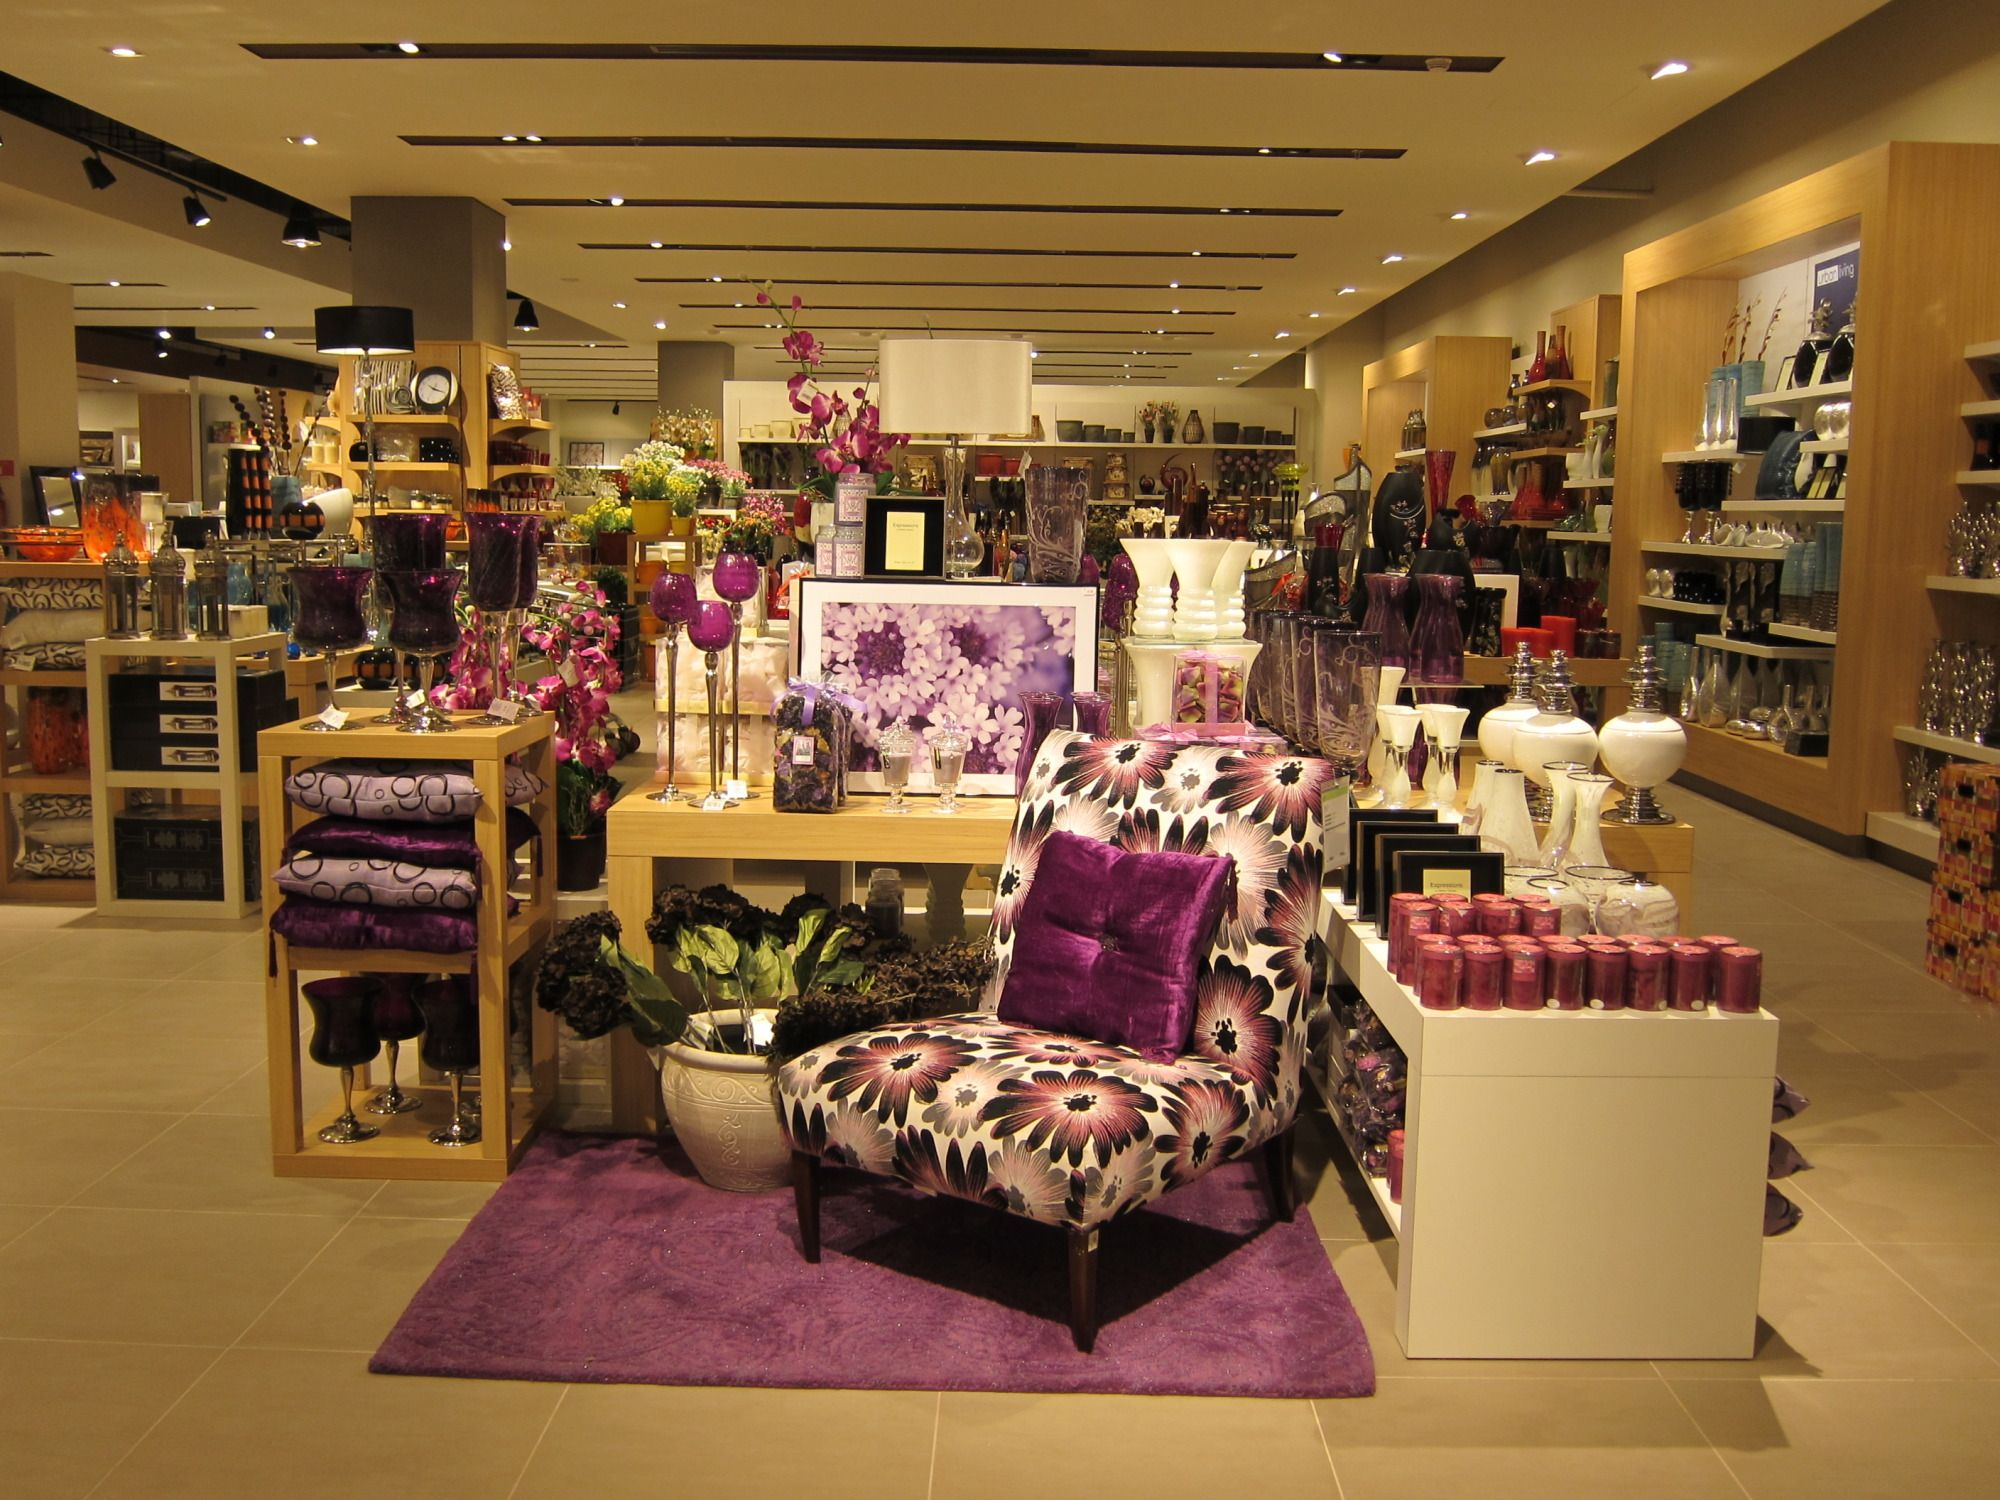 Furniture shops in manila - Visual Merchandising At Home Centre Dubai Uae Liv Design Studio Manila